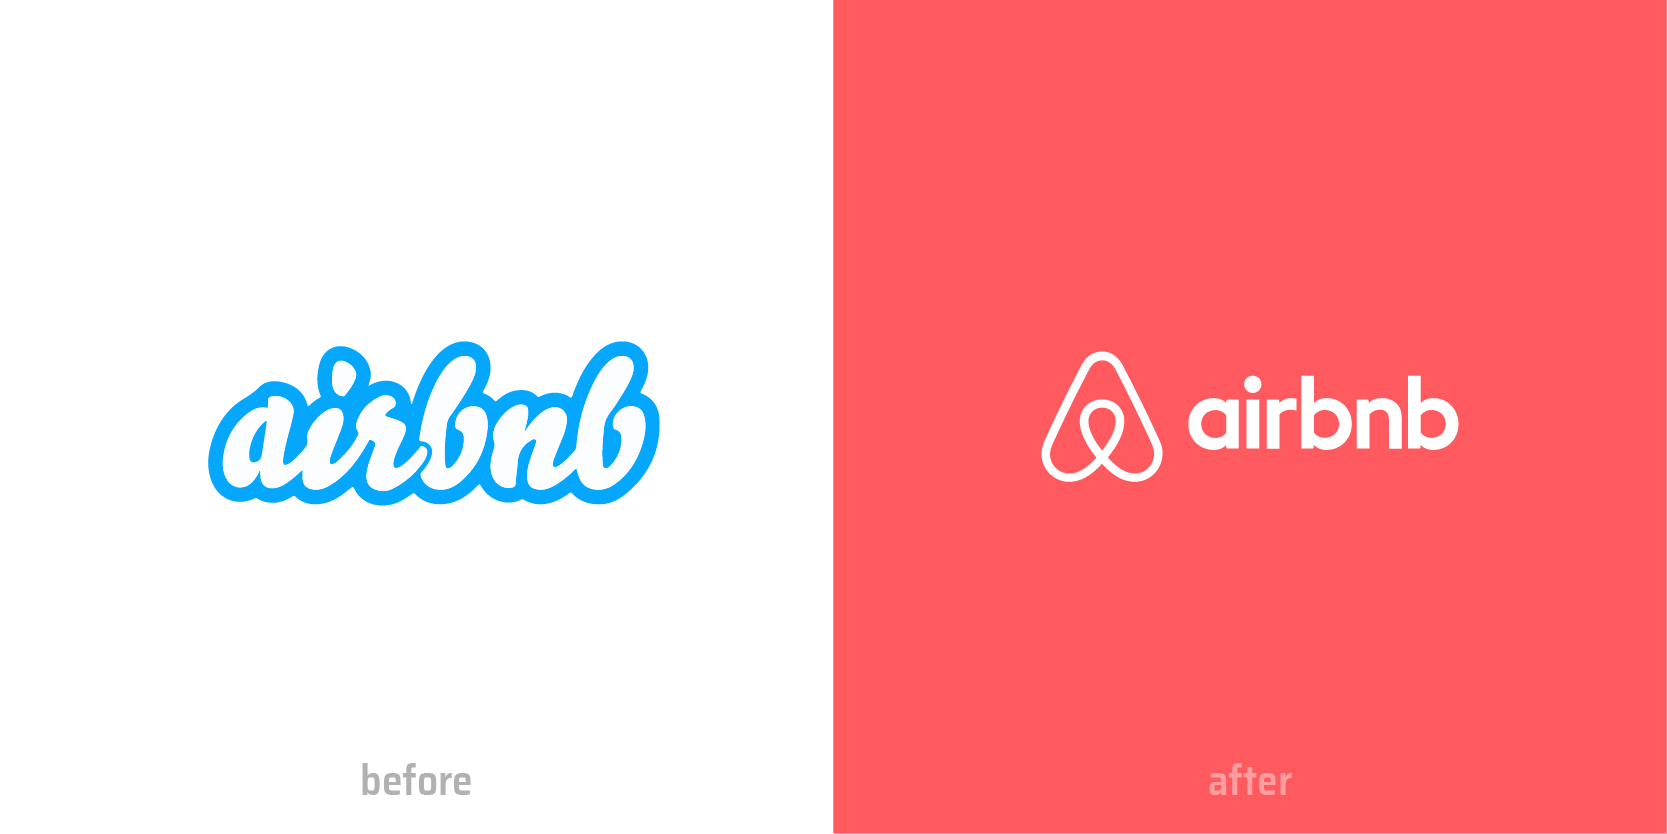 XAXs blog AirBnB logo comparision